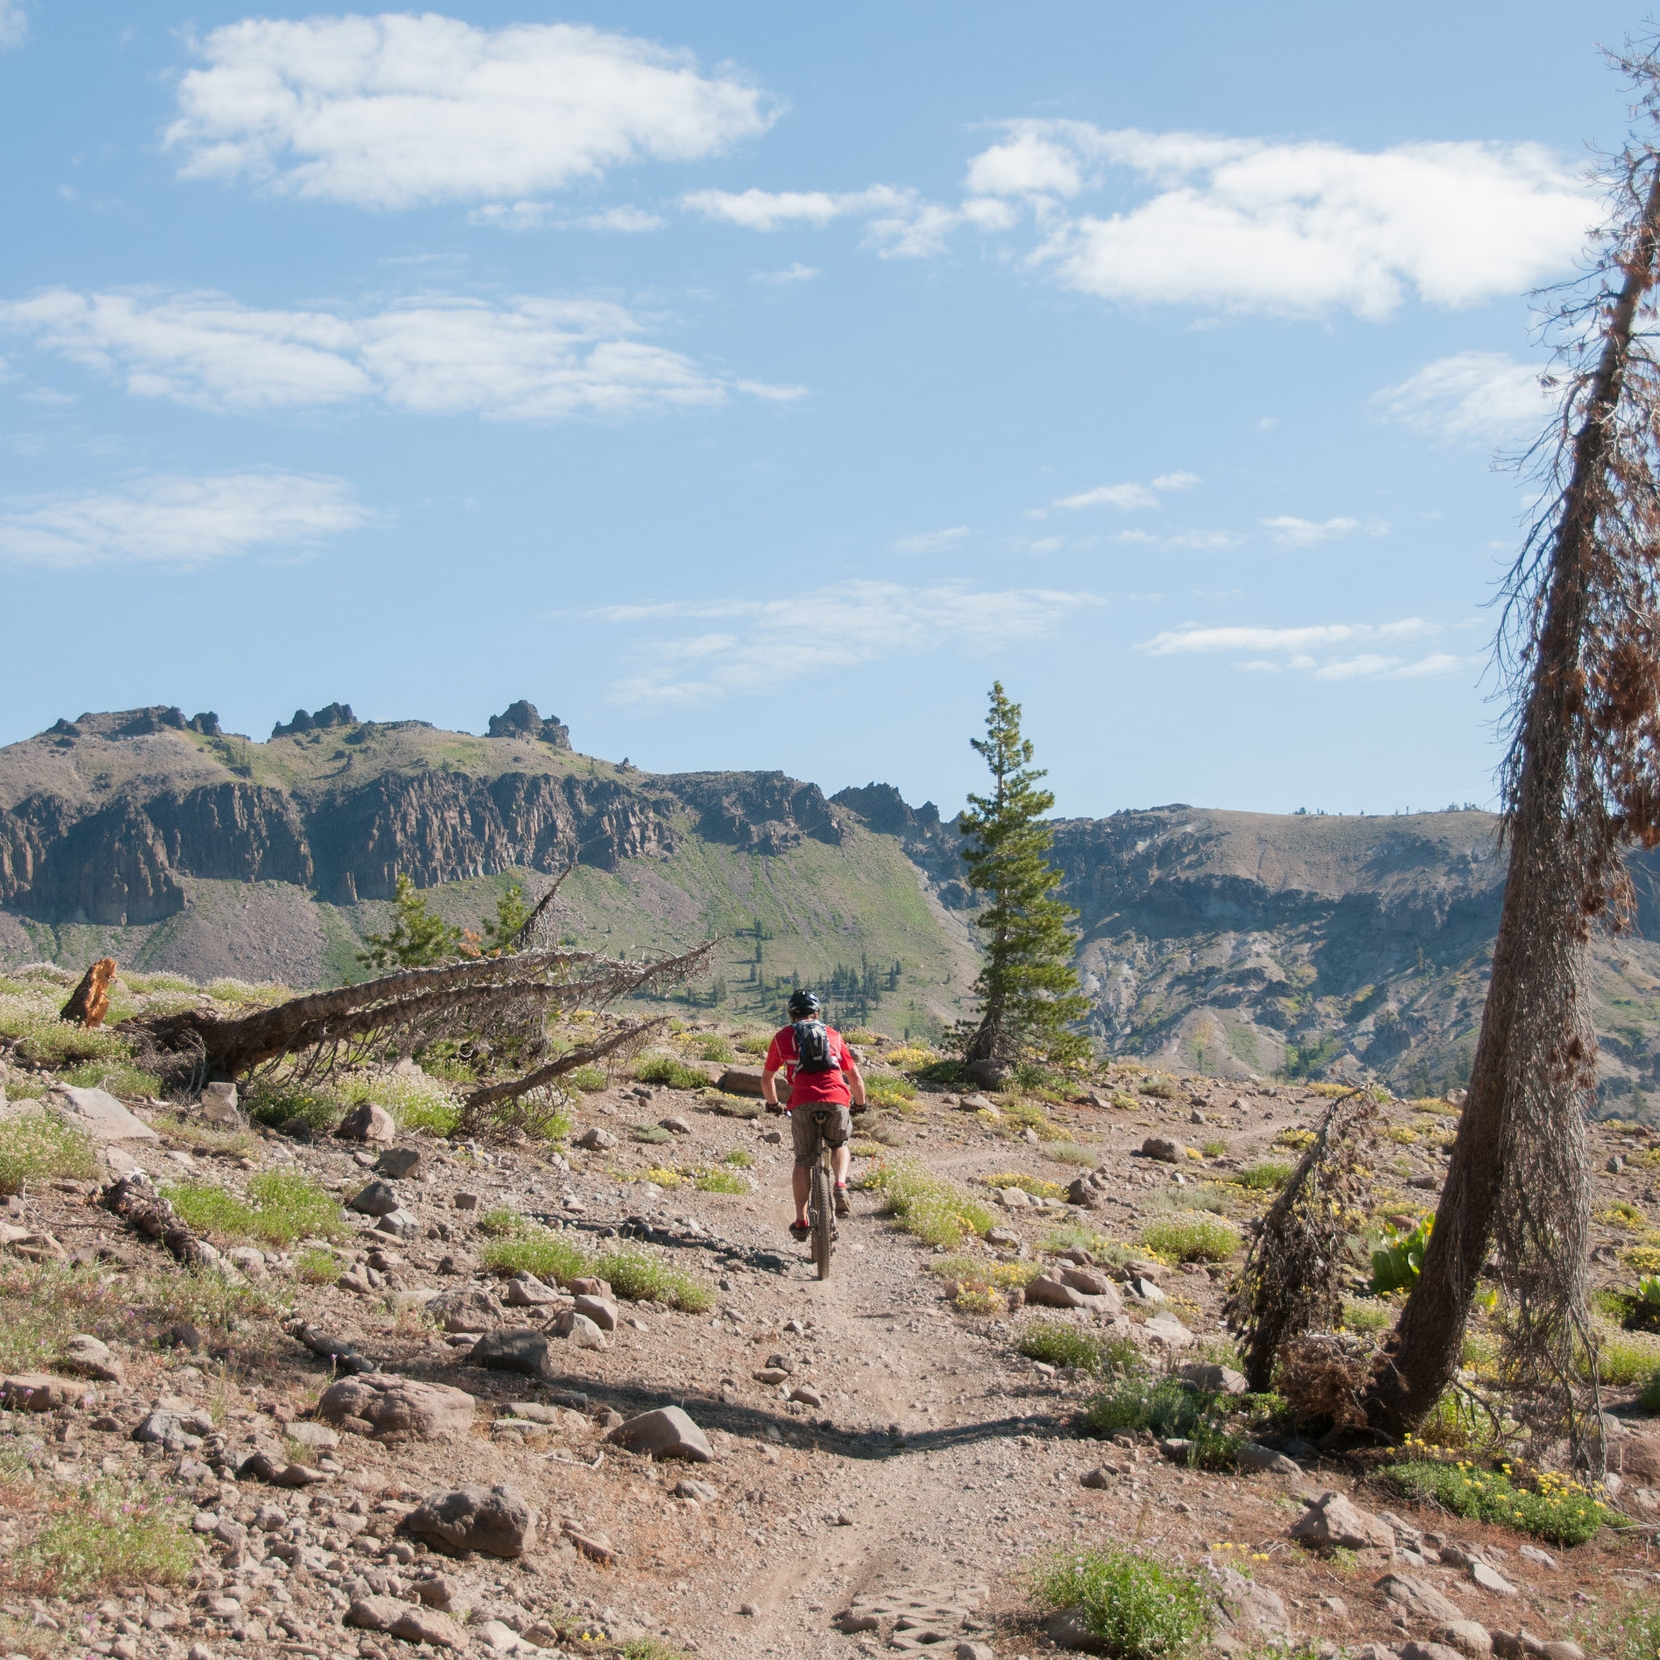 2 - A moderate 12 mile point-to-point trail located near Soda Springs for hiking, trail running, and mountain biking.